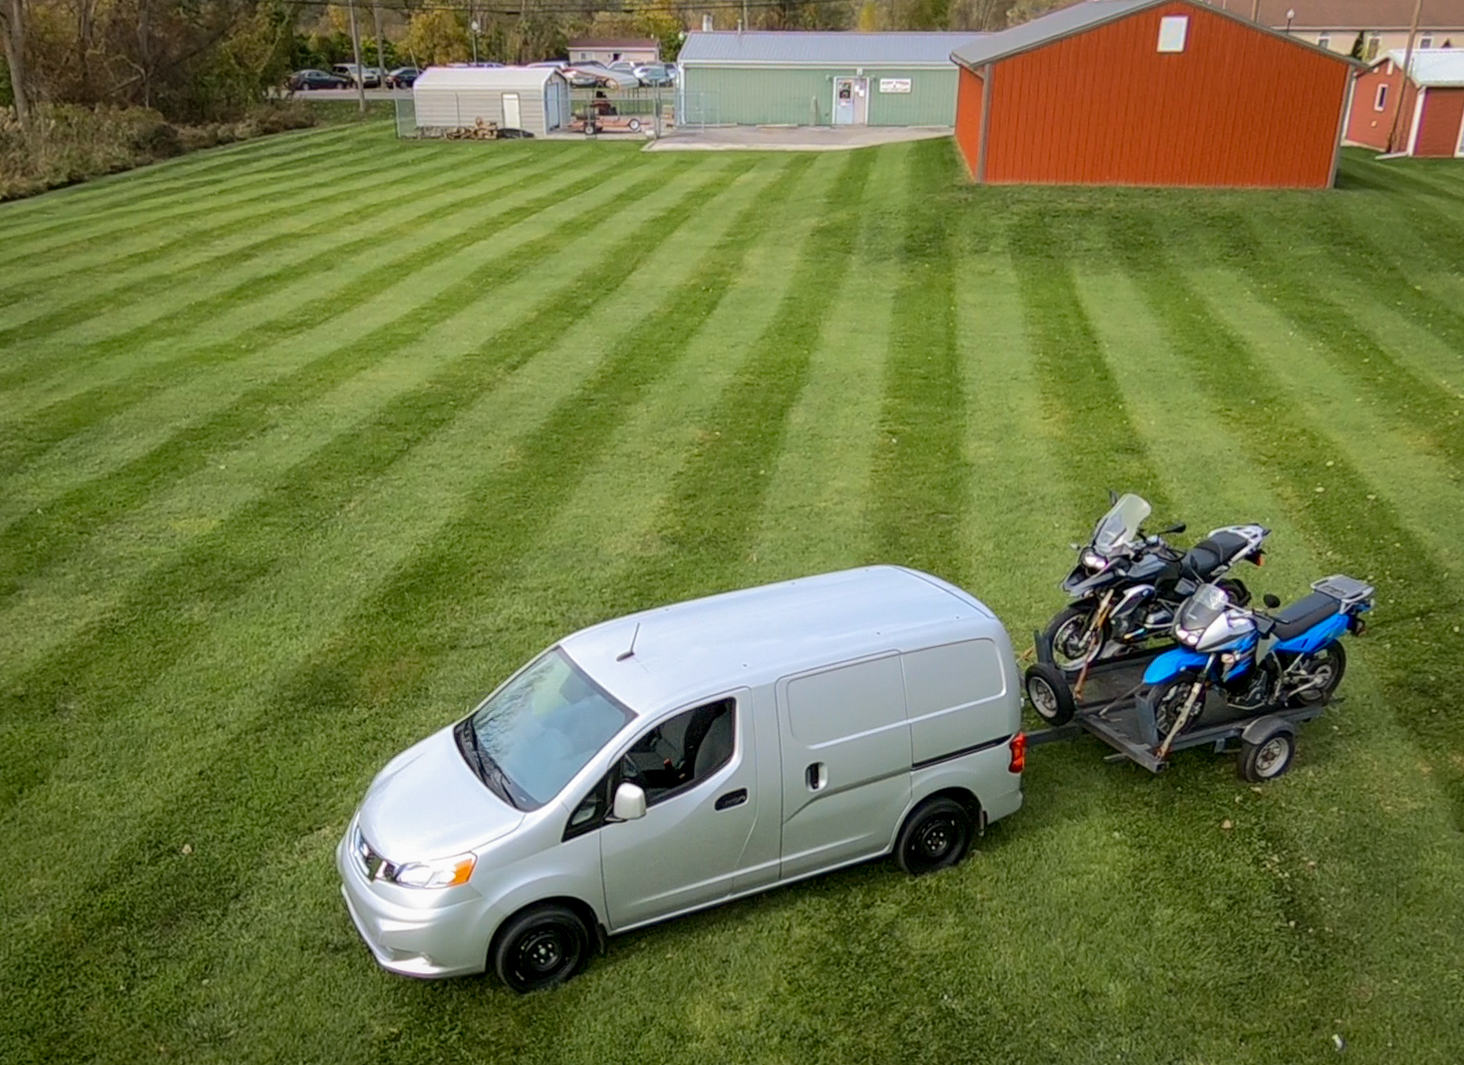 KLR and GS loaded up behind the NV200.